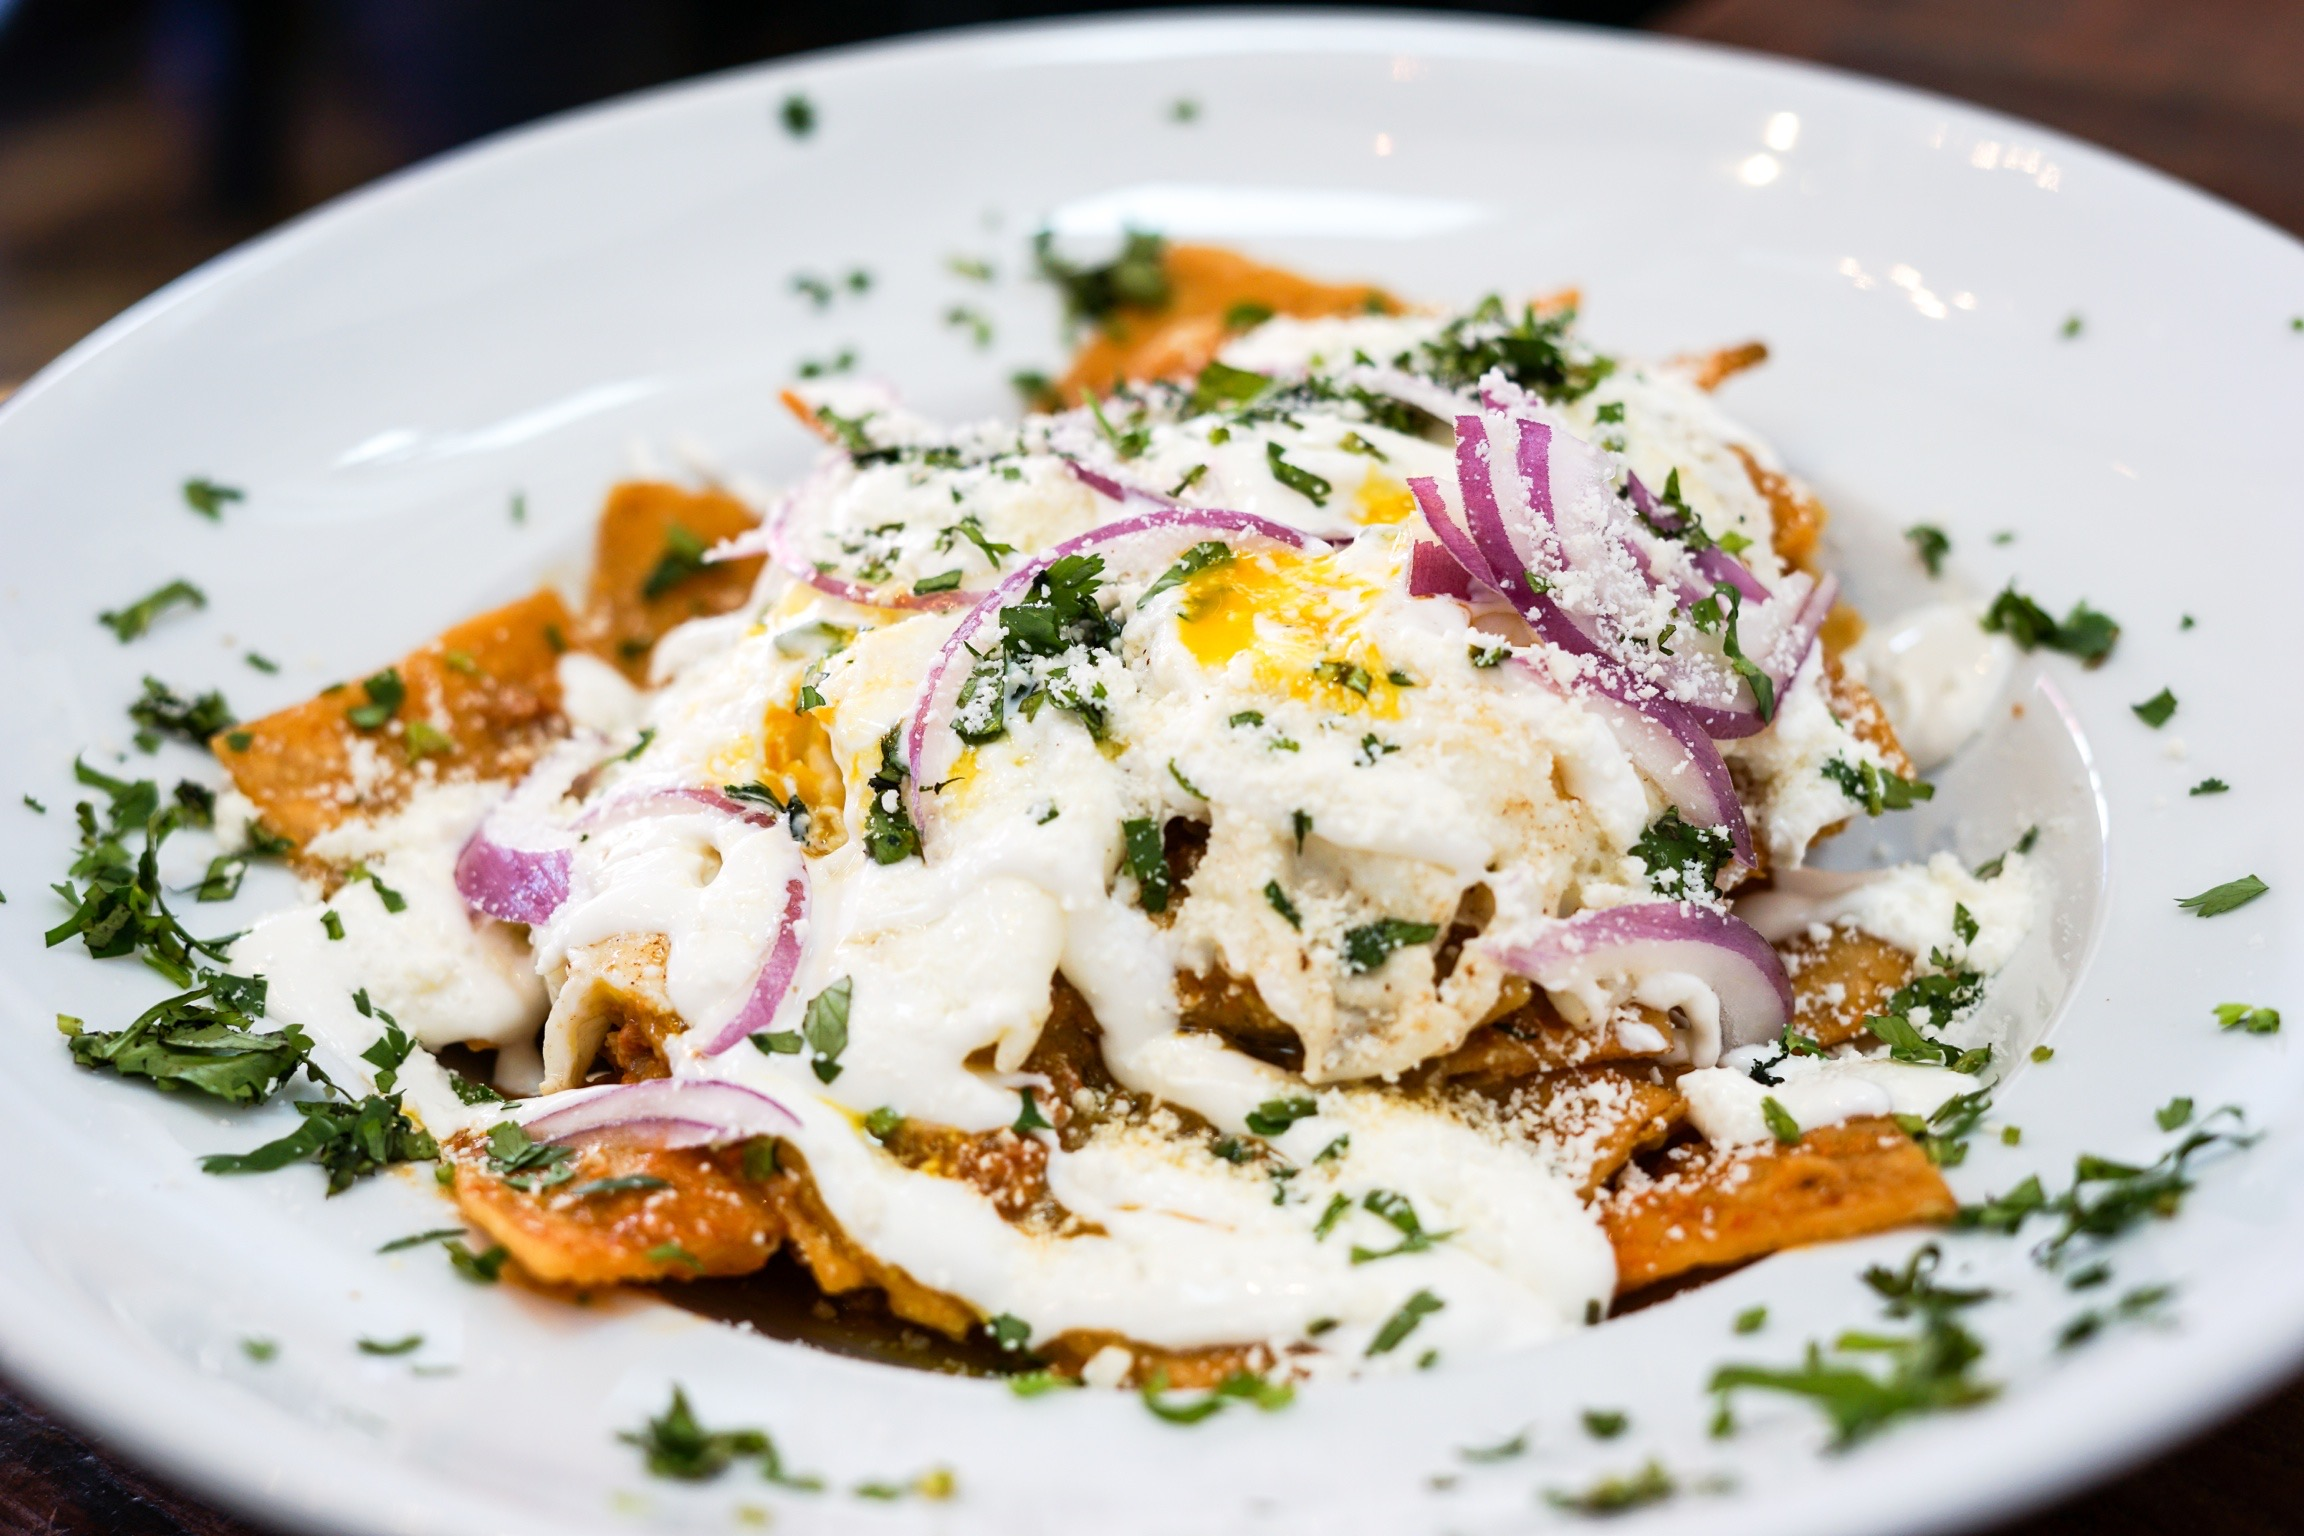 Chilaquiles at The Rockefeller, Manhattan Beach, CA